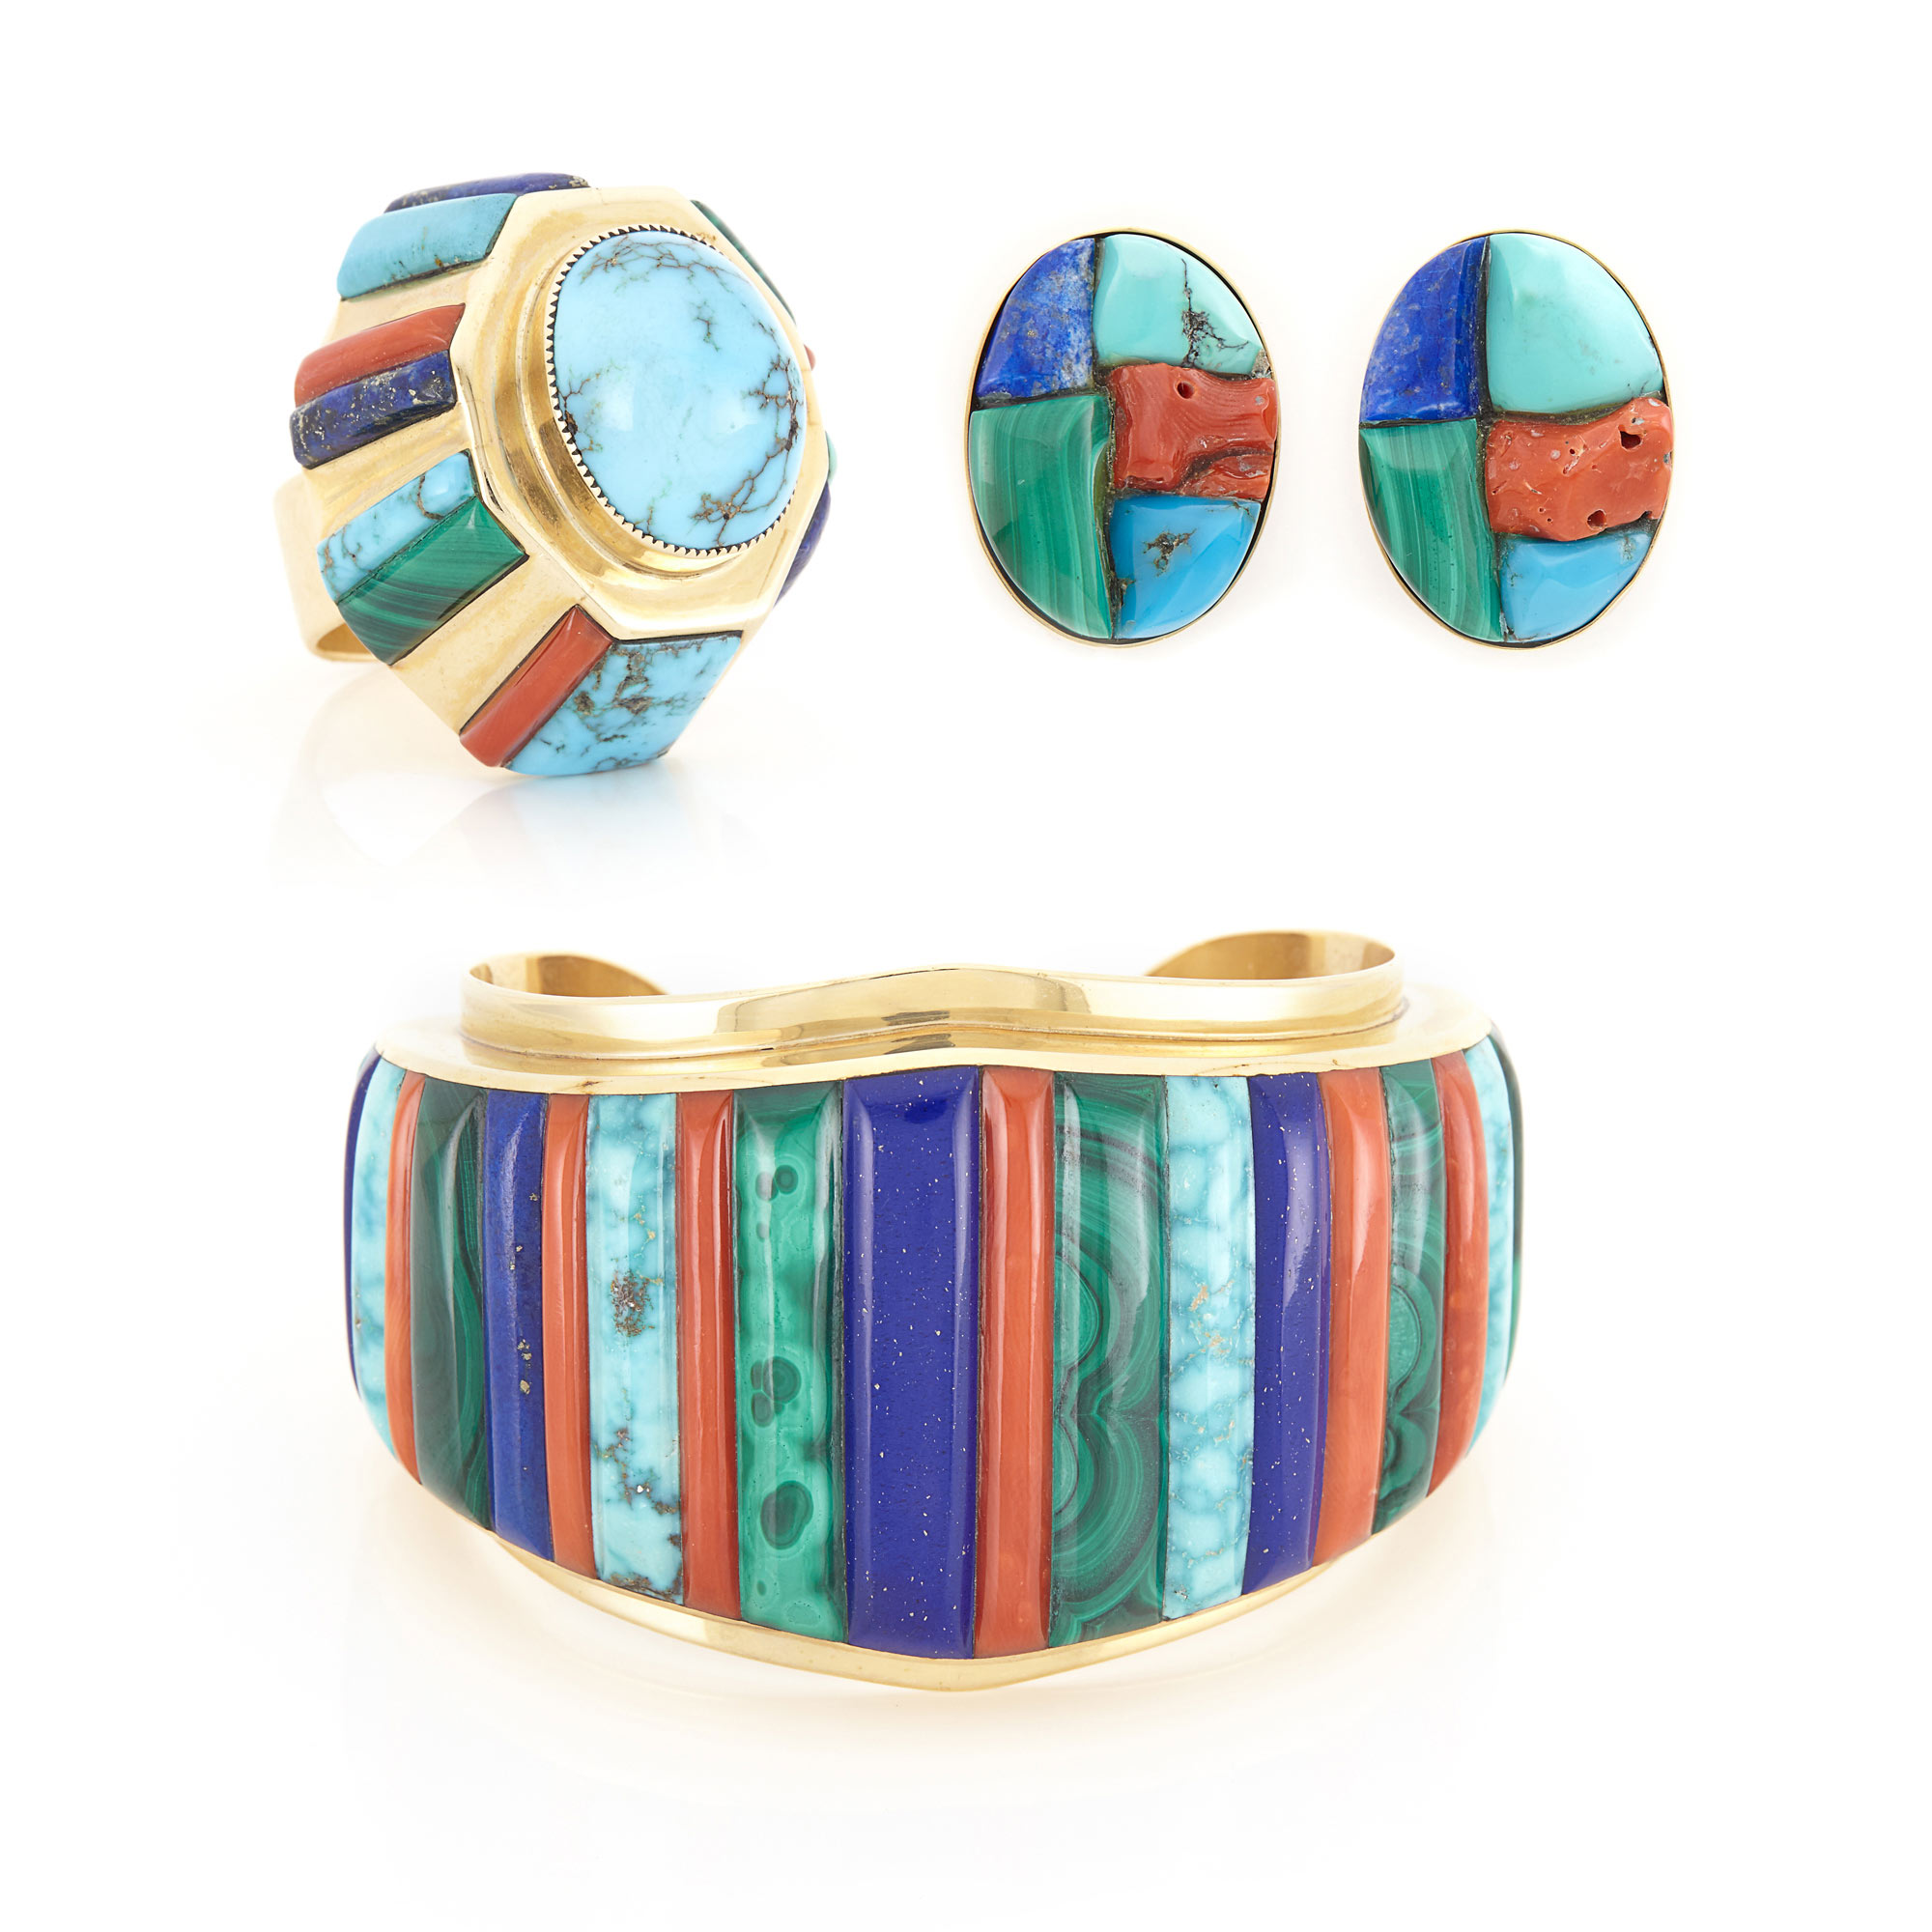 Lot image - Gold, Turquoise, Coral, Lapis and Malachite Cuff Bangle Bracelet, Pair of Earrings and Ring